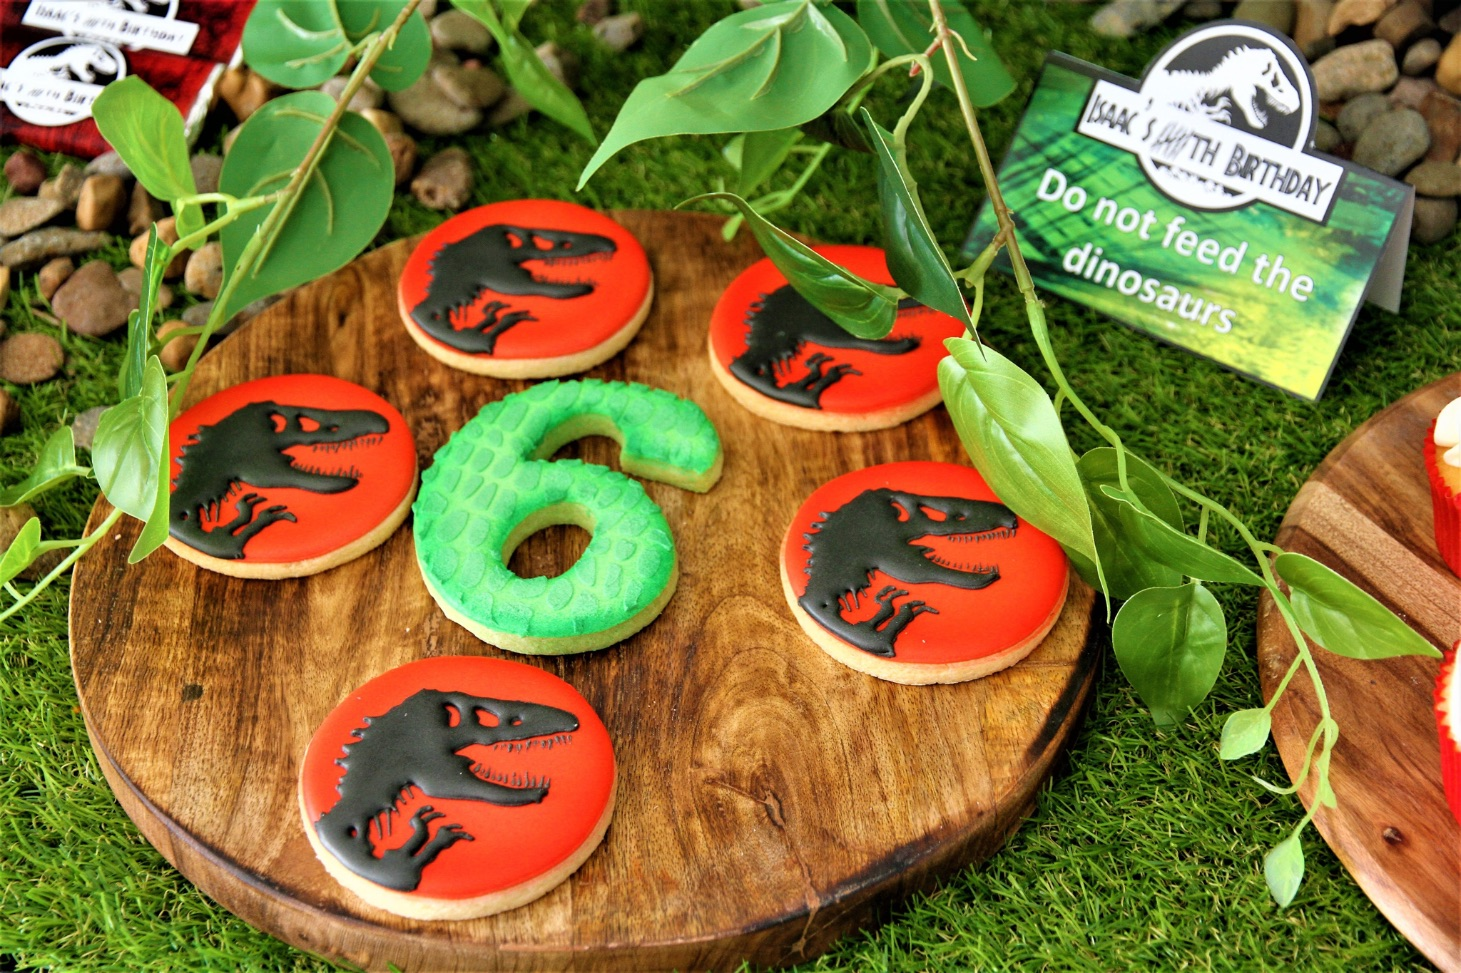 Jurassic Park inspired dinosaur party, Isaac's Jurassic Park inspired dinosaur party